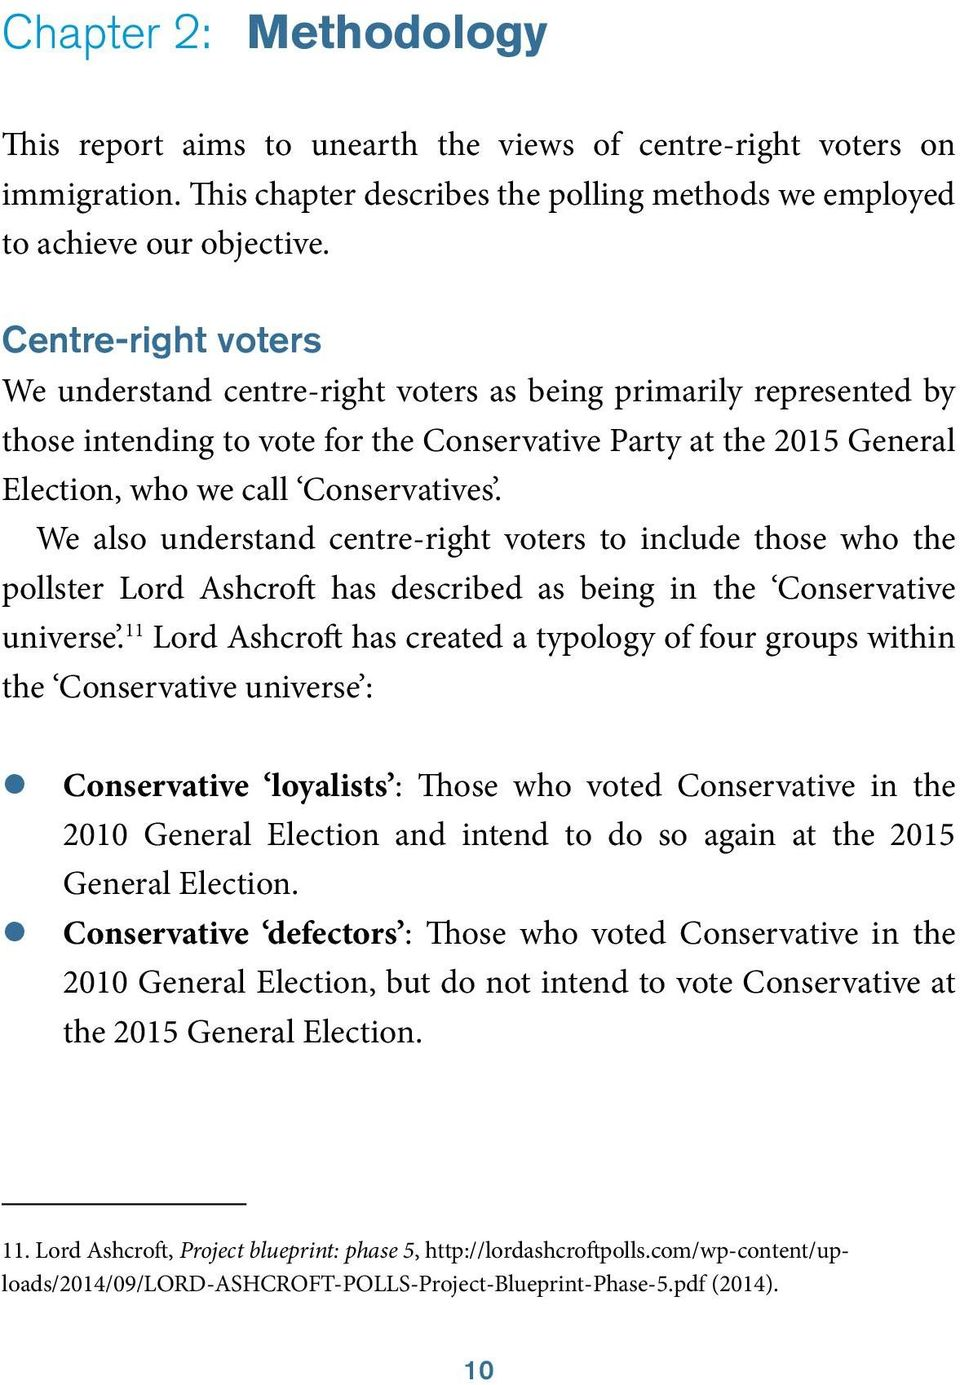 We also understand centre-right voters to include those who the pollster Lord Ashcroft has described as being in the Conservative universe.